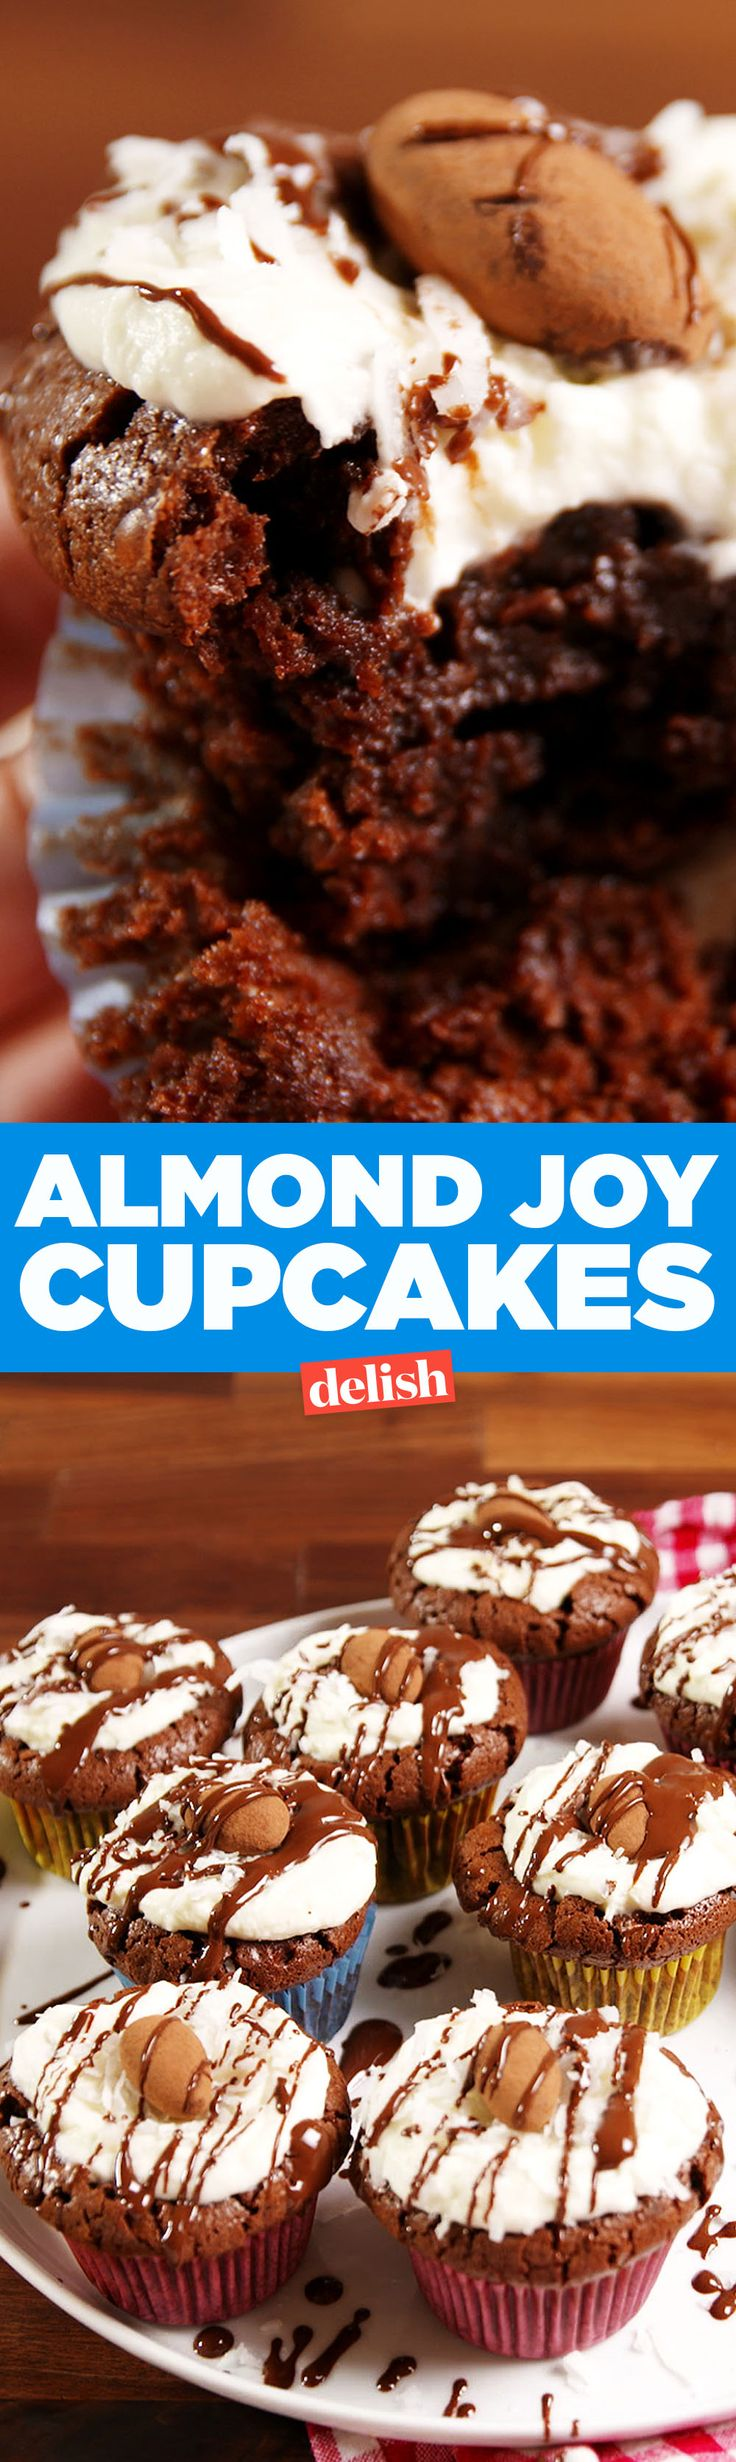 These flourless Almond Joy Cupcakes can totally pass on a low-carb diet. Get the recipe on Delish.com.